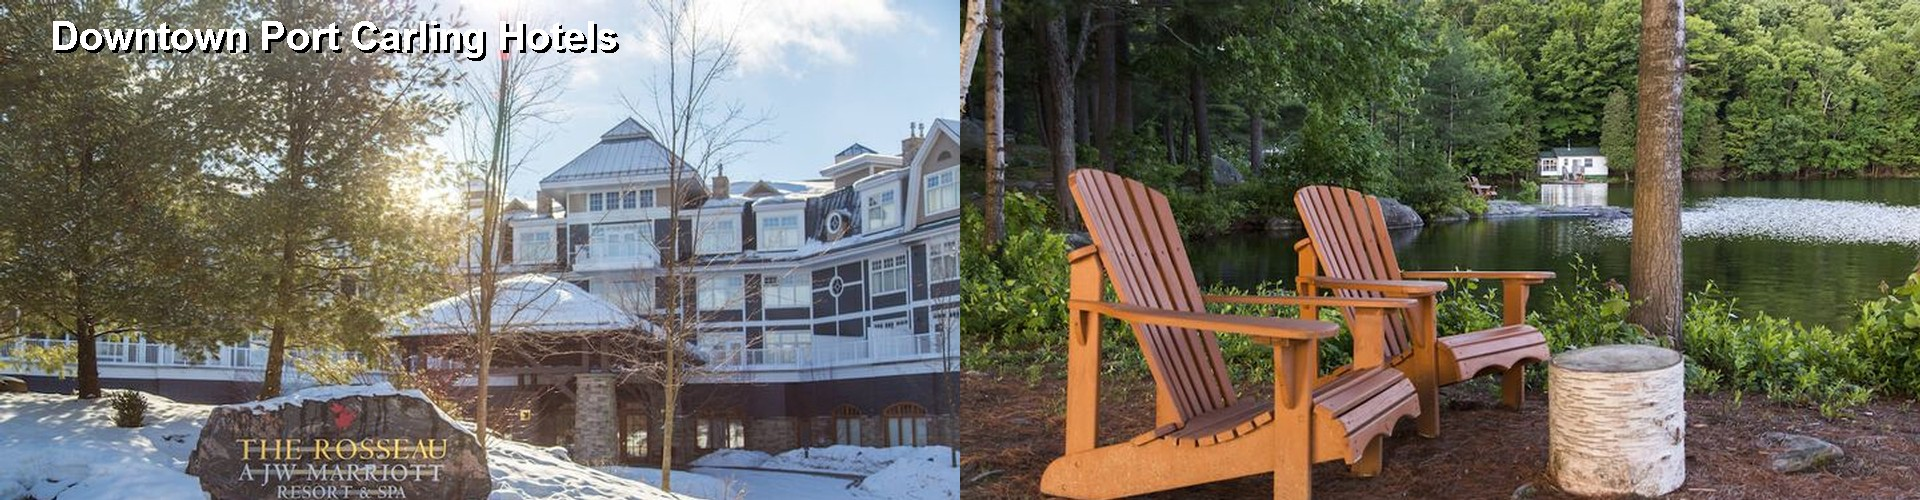 3 Best Hotels near Downtown Port Carling